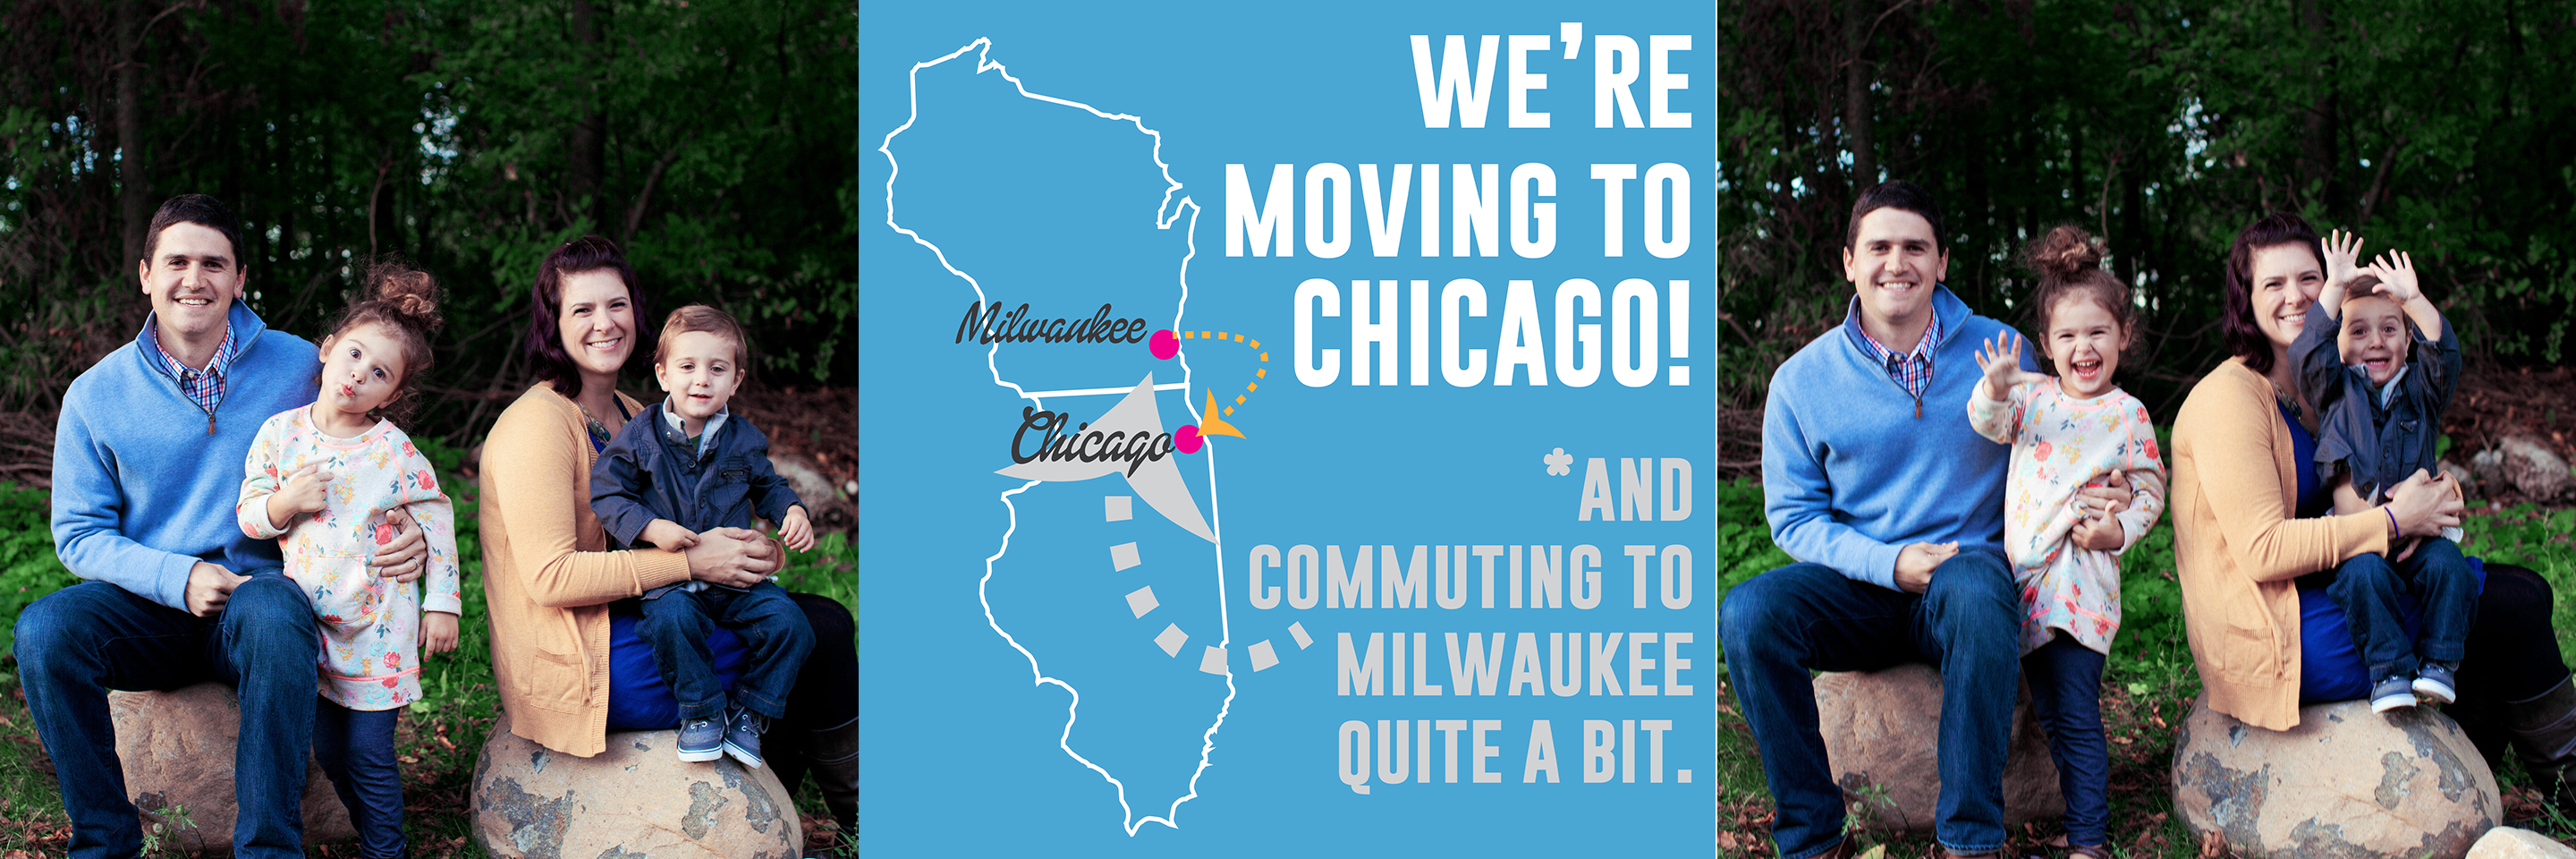 We're moving to Chicago!